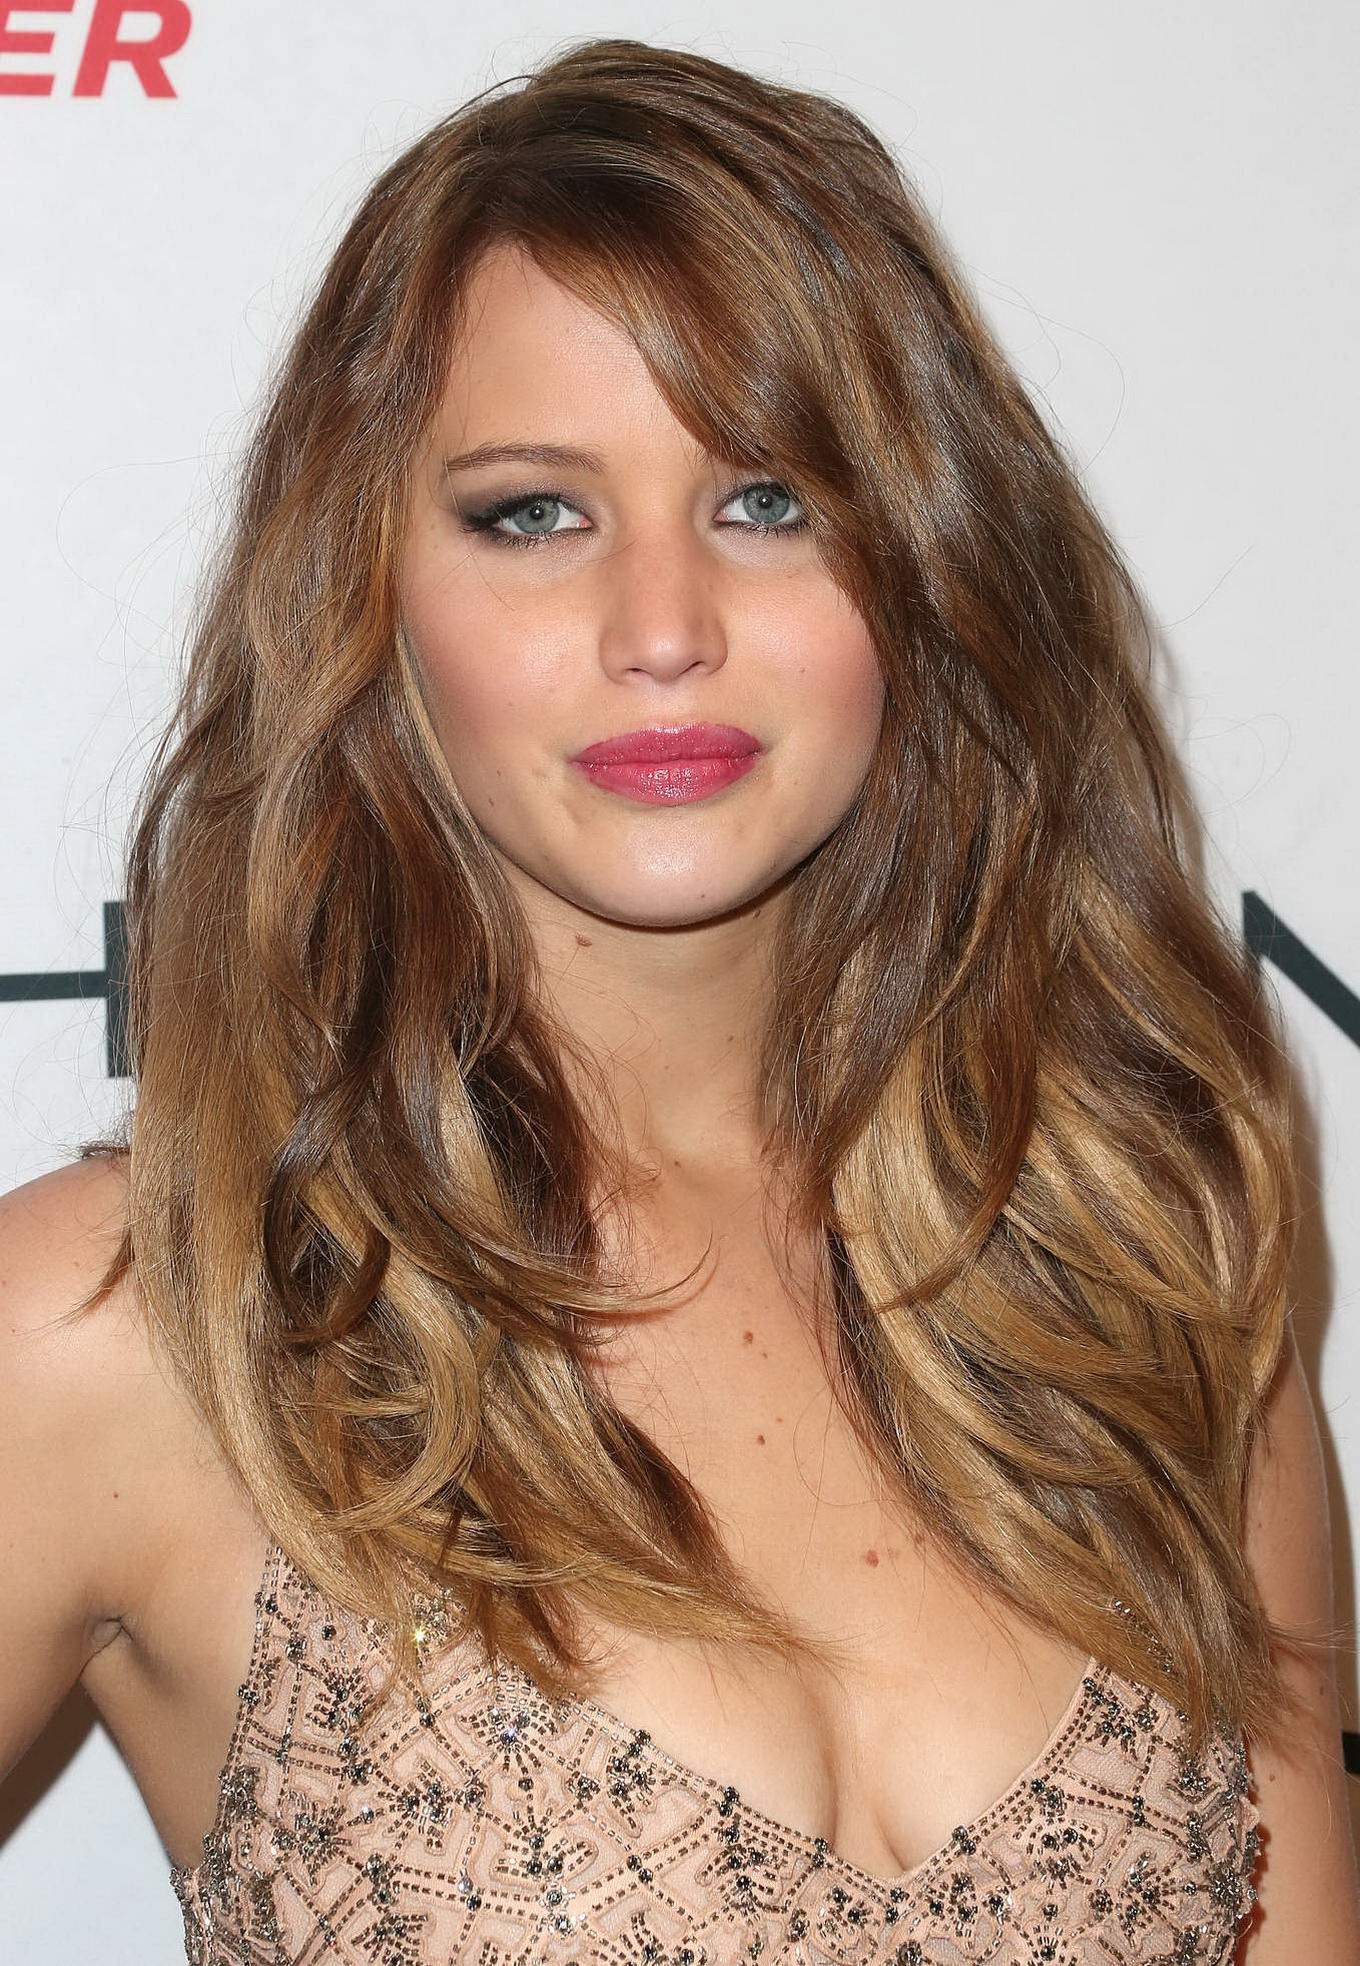 Jennifer Lawrence Braless Showing Big Cleavage In A Flesh